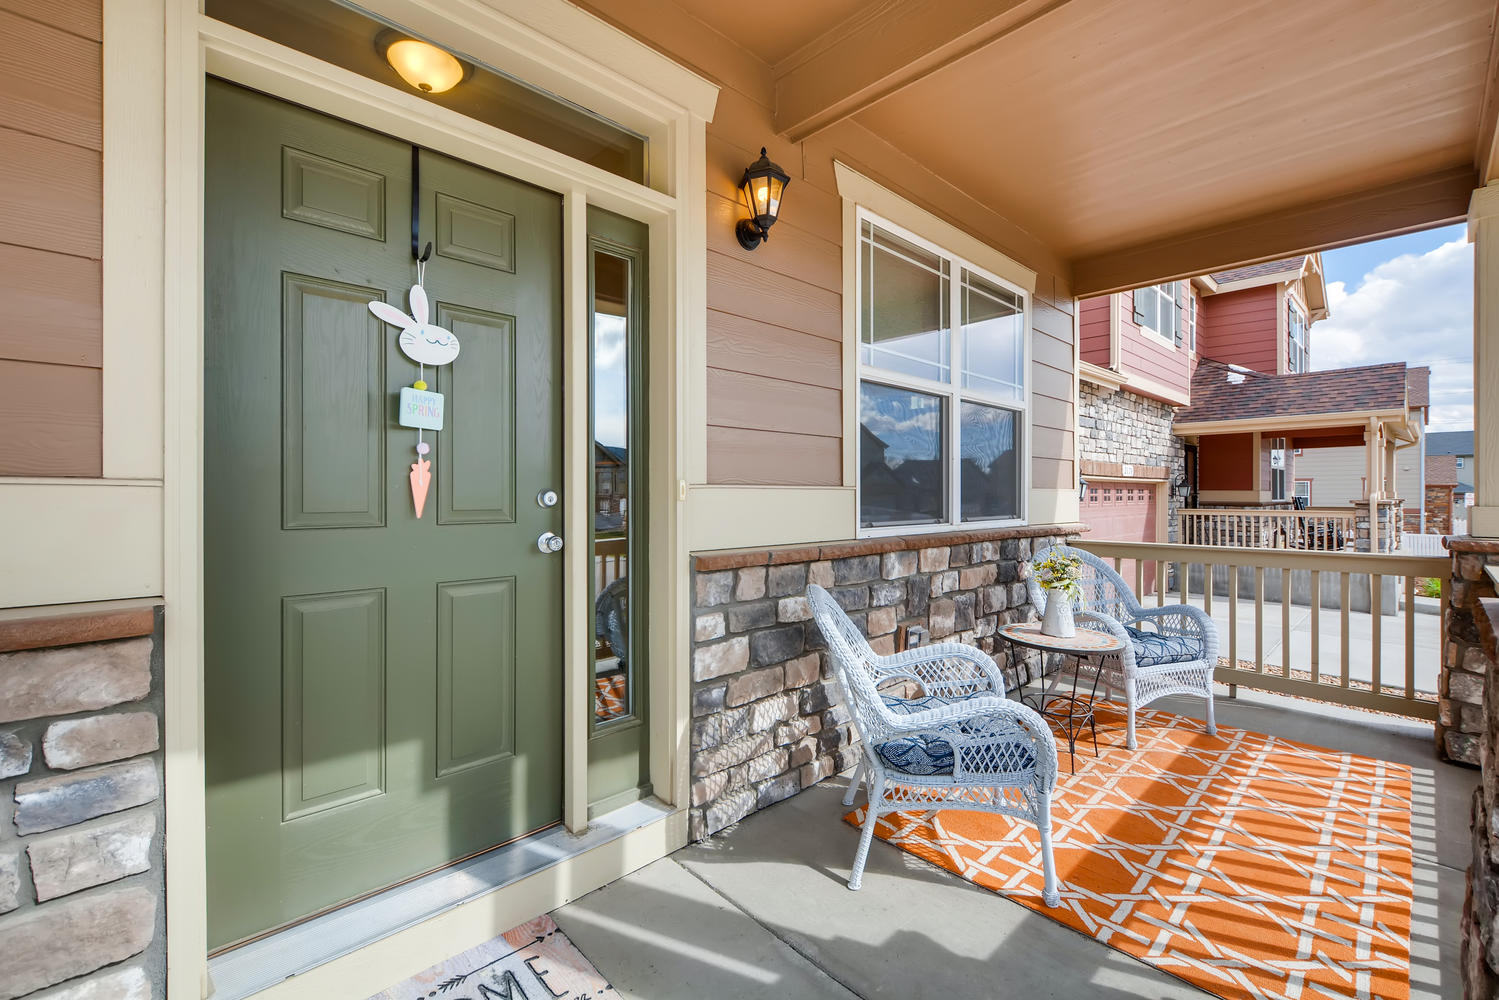 REAL ESTATE LISTING: 2182 Steppe Dr Longmont Front Porch